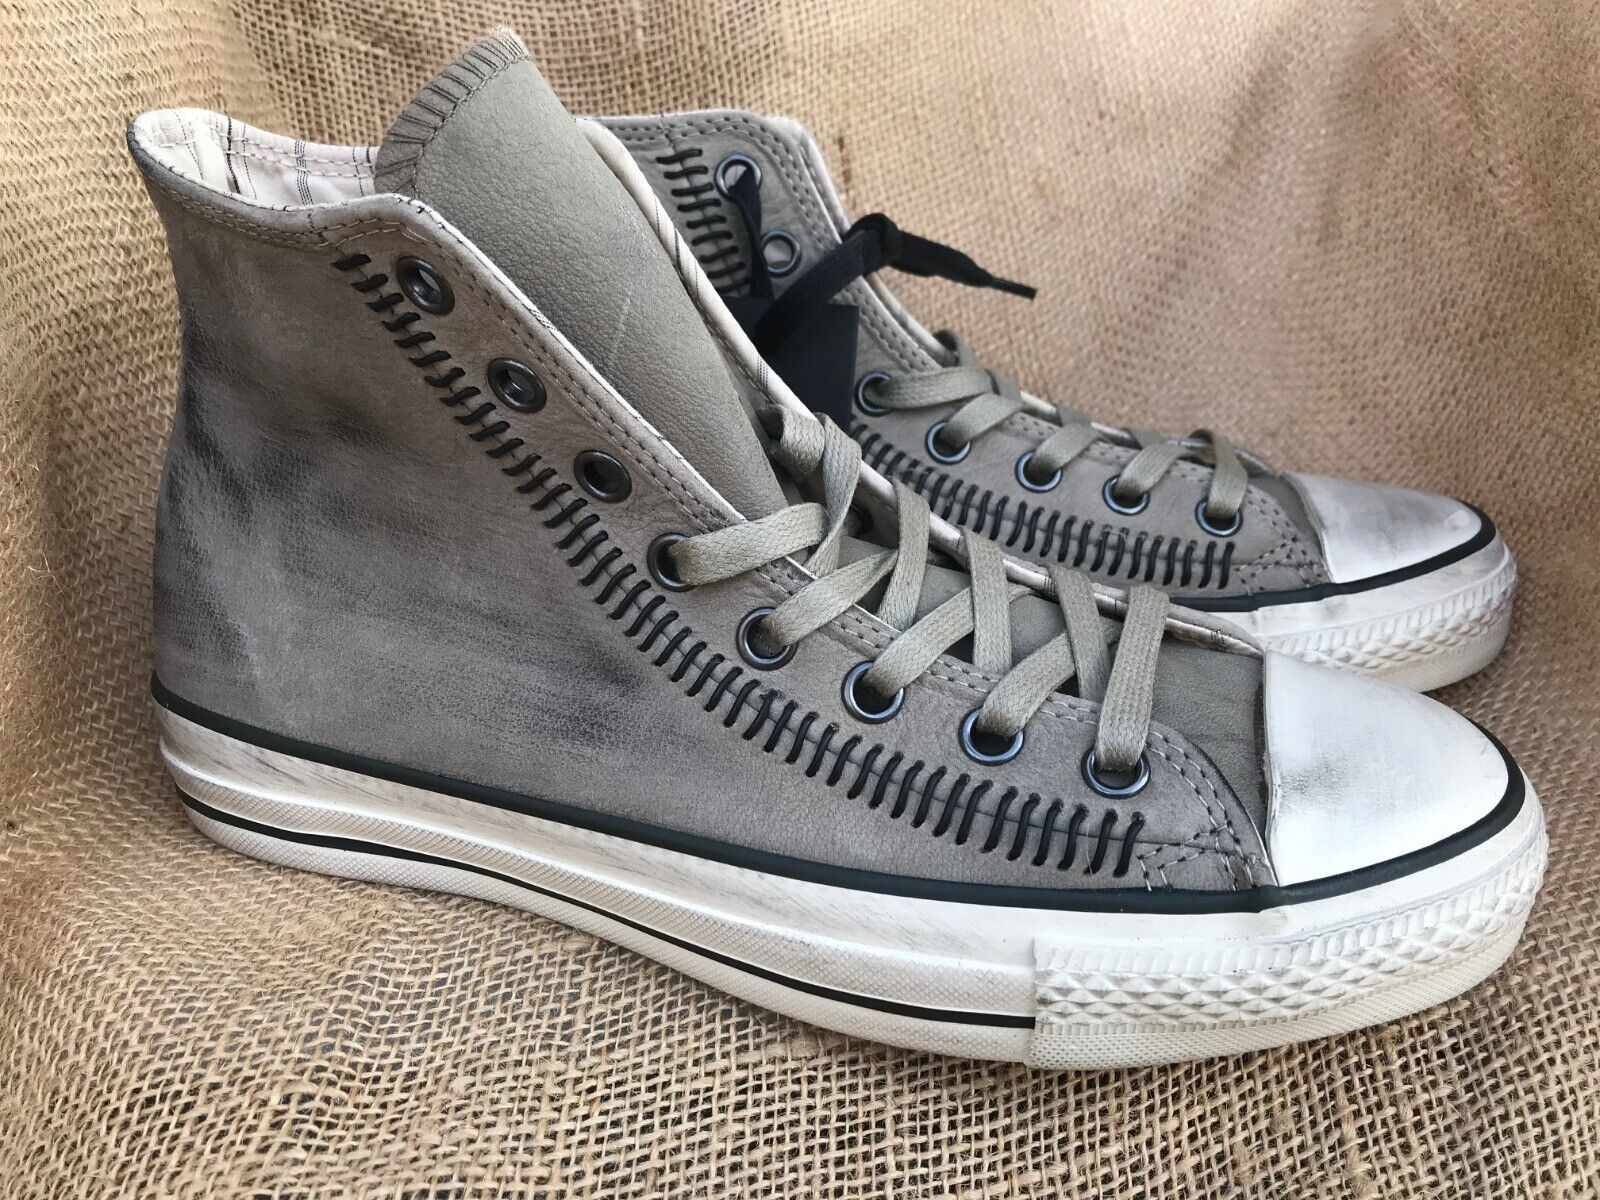 Size 8 Converse Trainers for sale